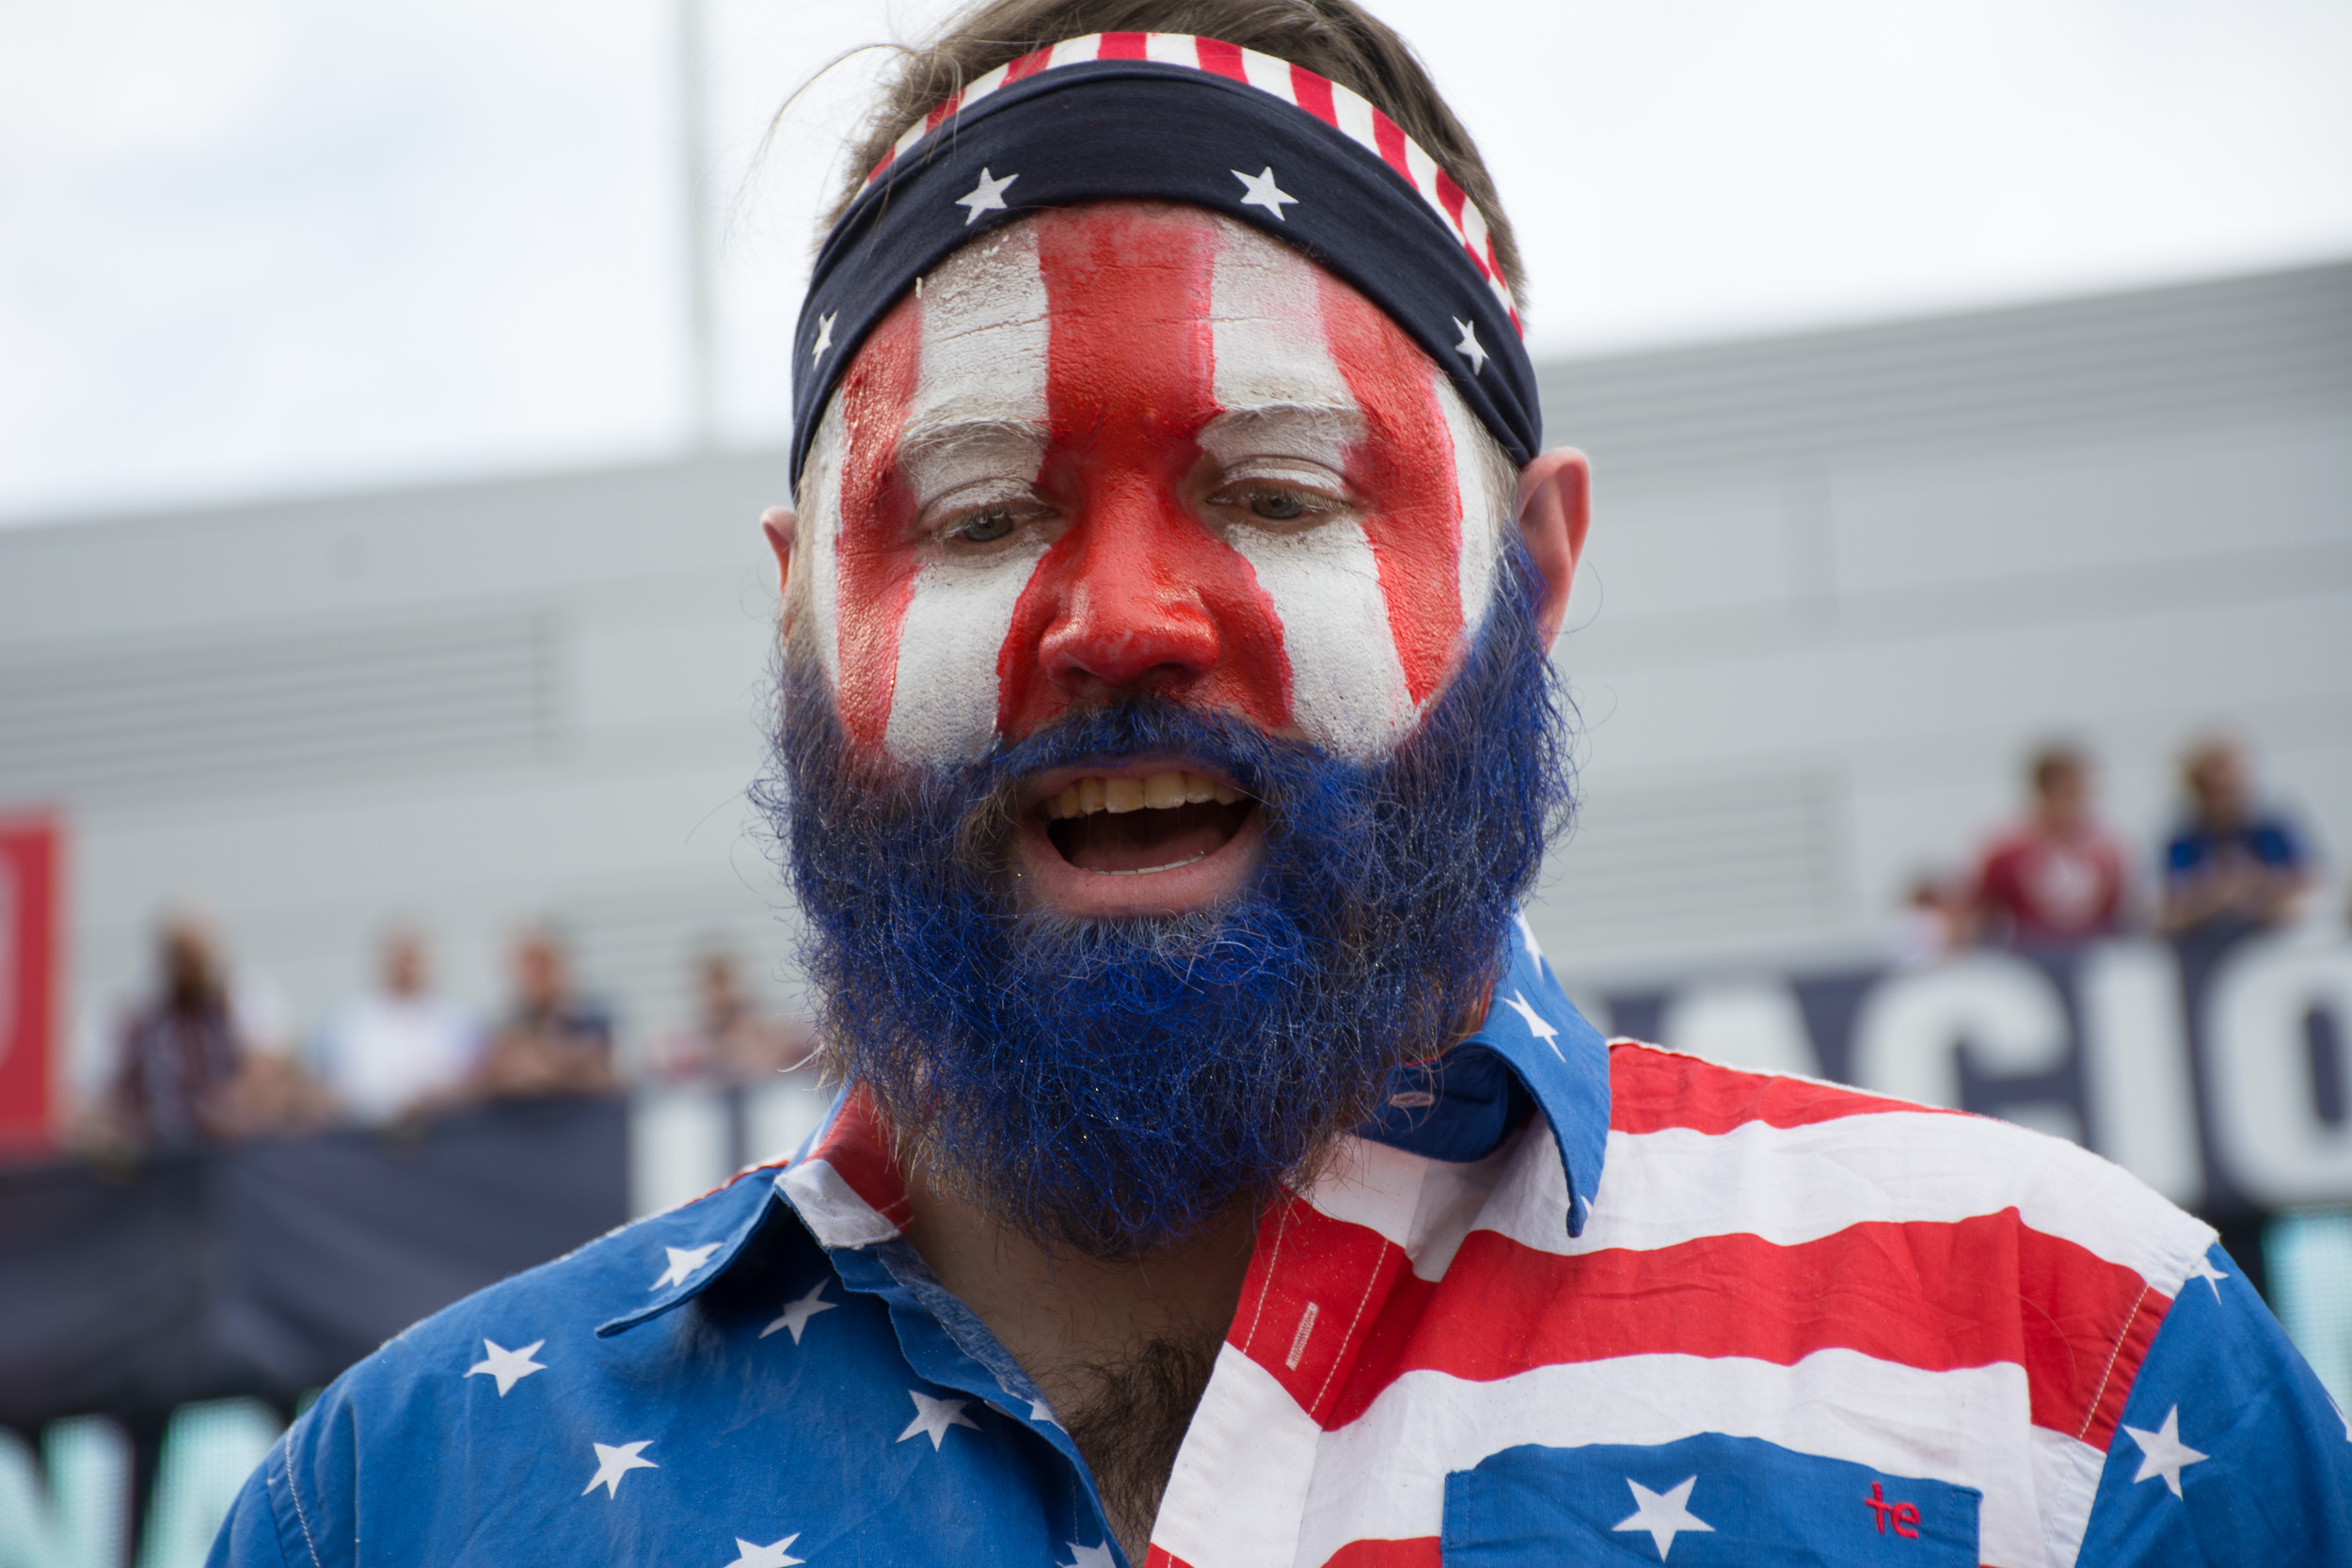 USMNT Fan Face painted